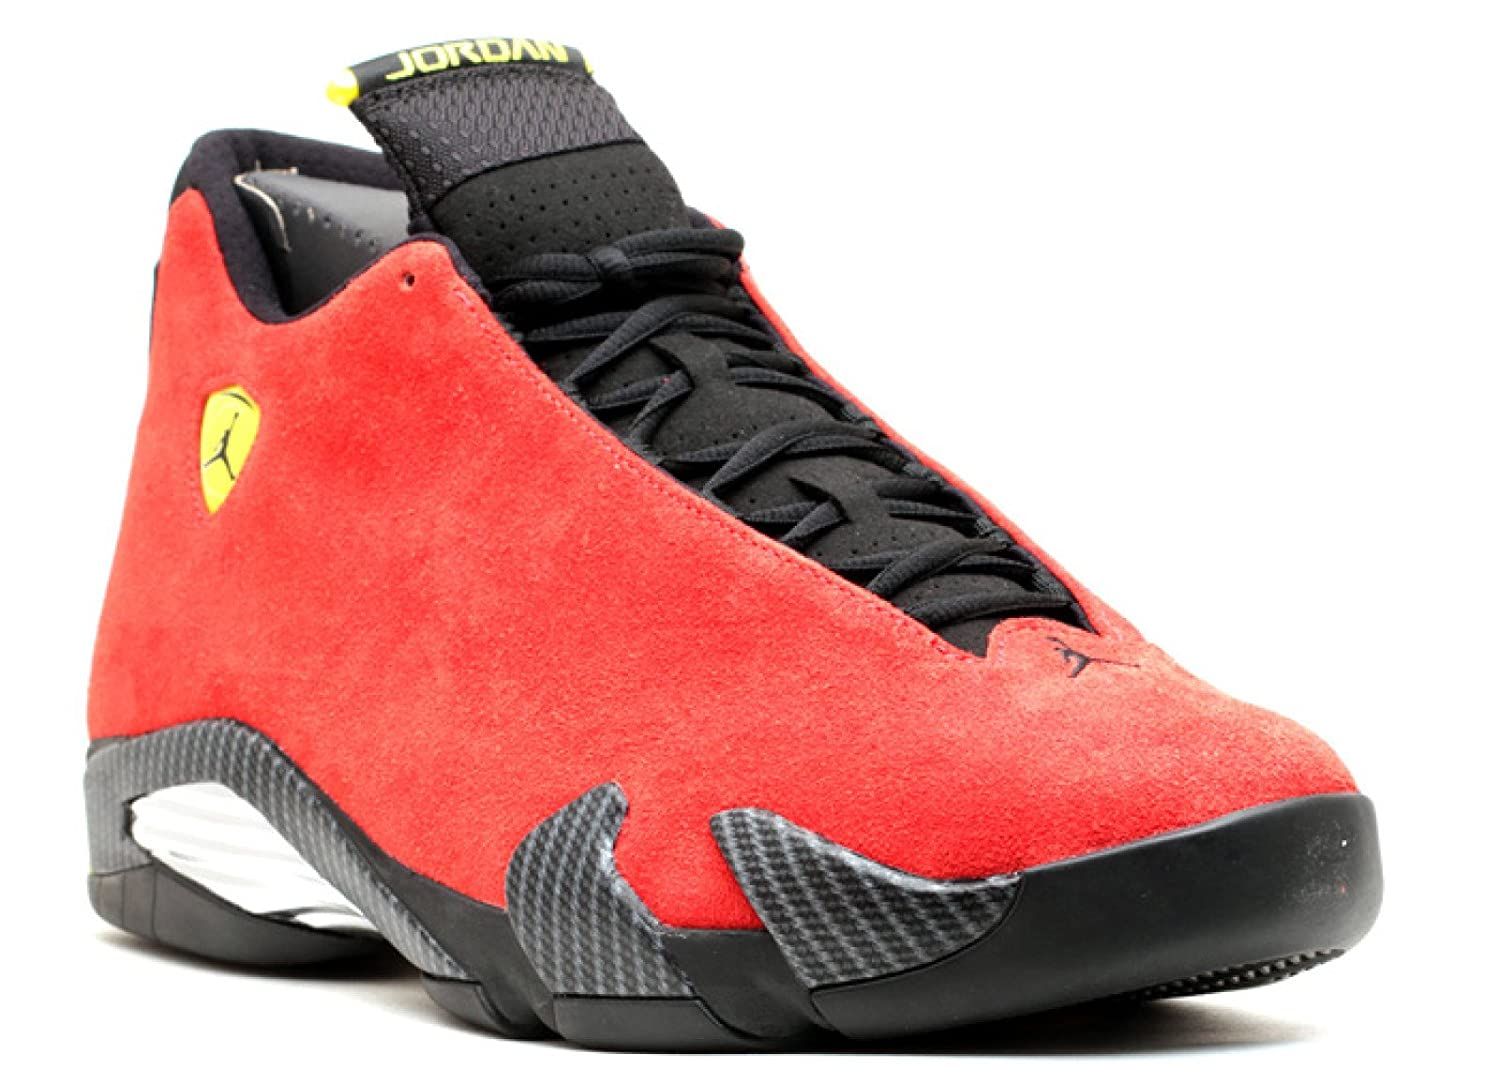 new style 22399 bb7a9 Amazon.com   Jordan Air 14 Retro Ferrari Men s Shoes Challenge Red Vibrant  Yellow Anthracite Black 654459-670   Basketball